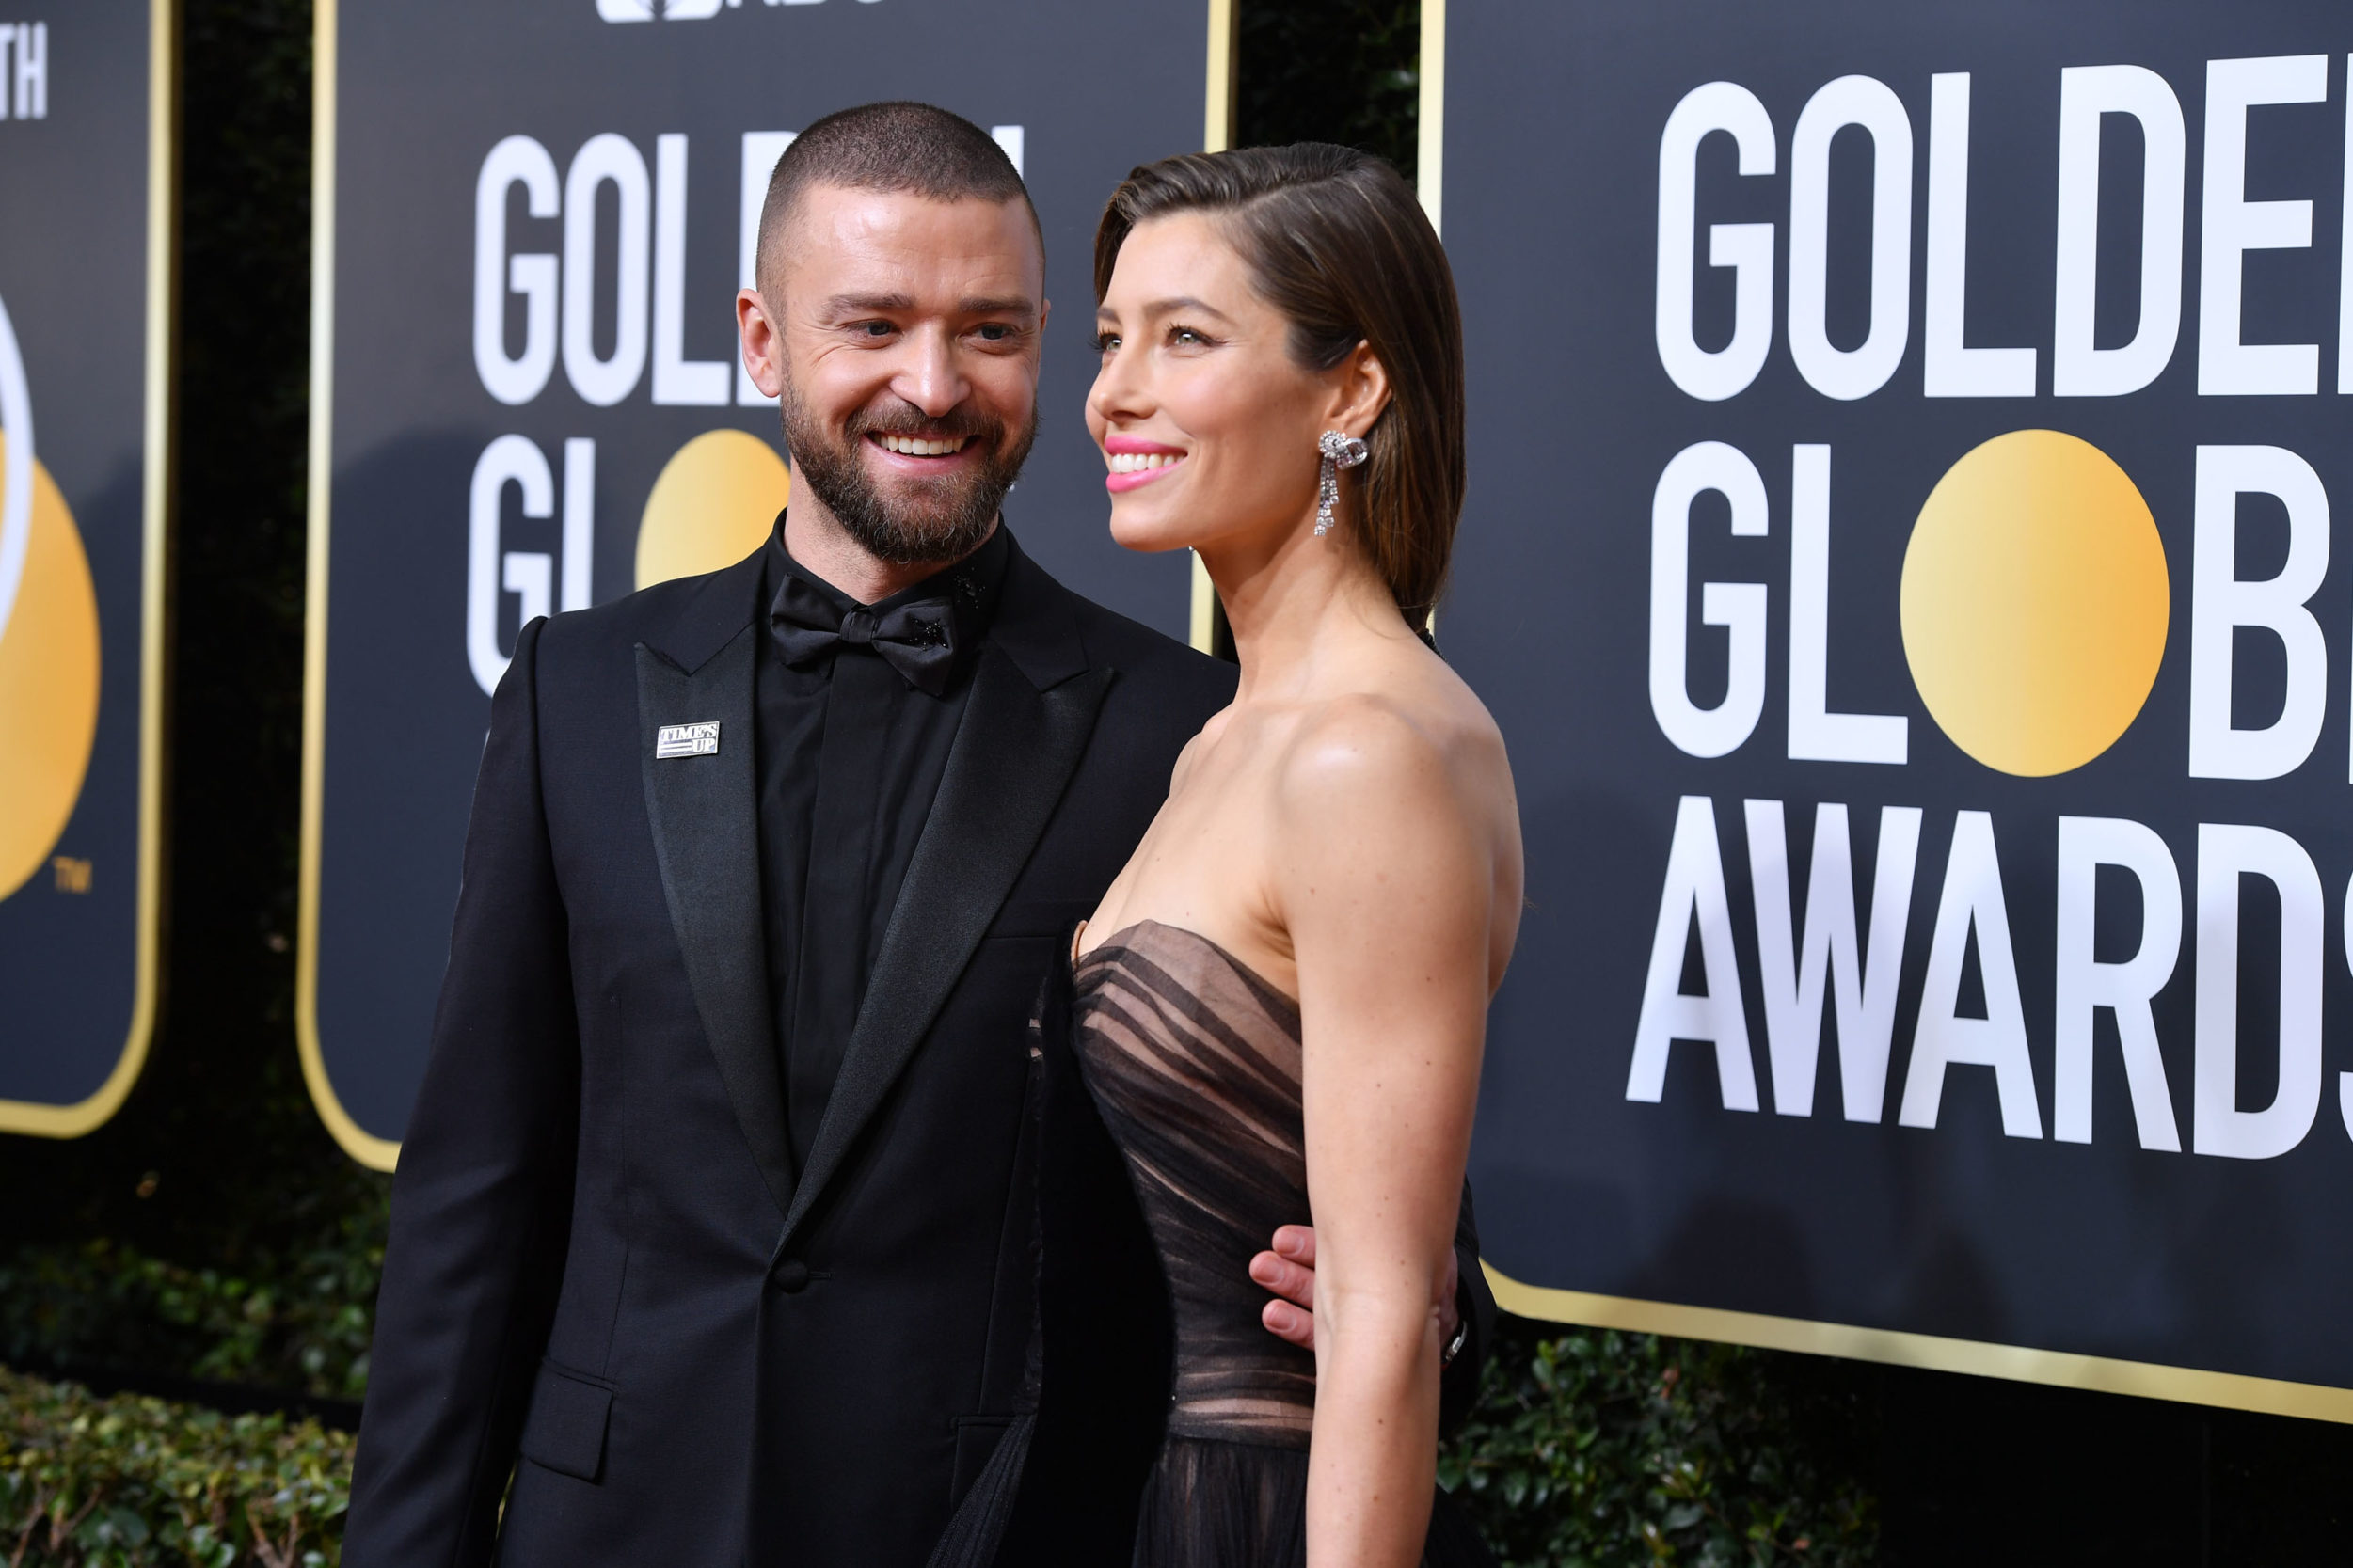 Justin Timberlake and Jessica Biel are #RelationshipGoals in this short but sweet Instagram post